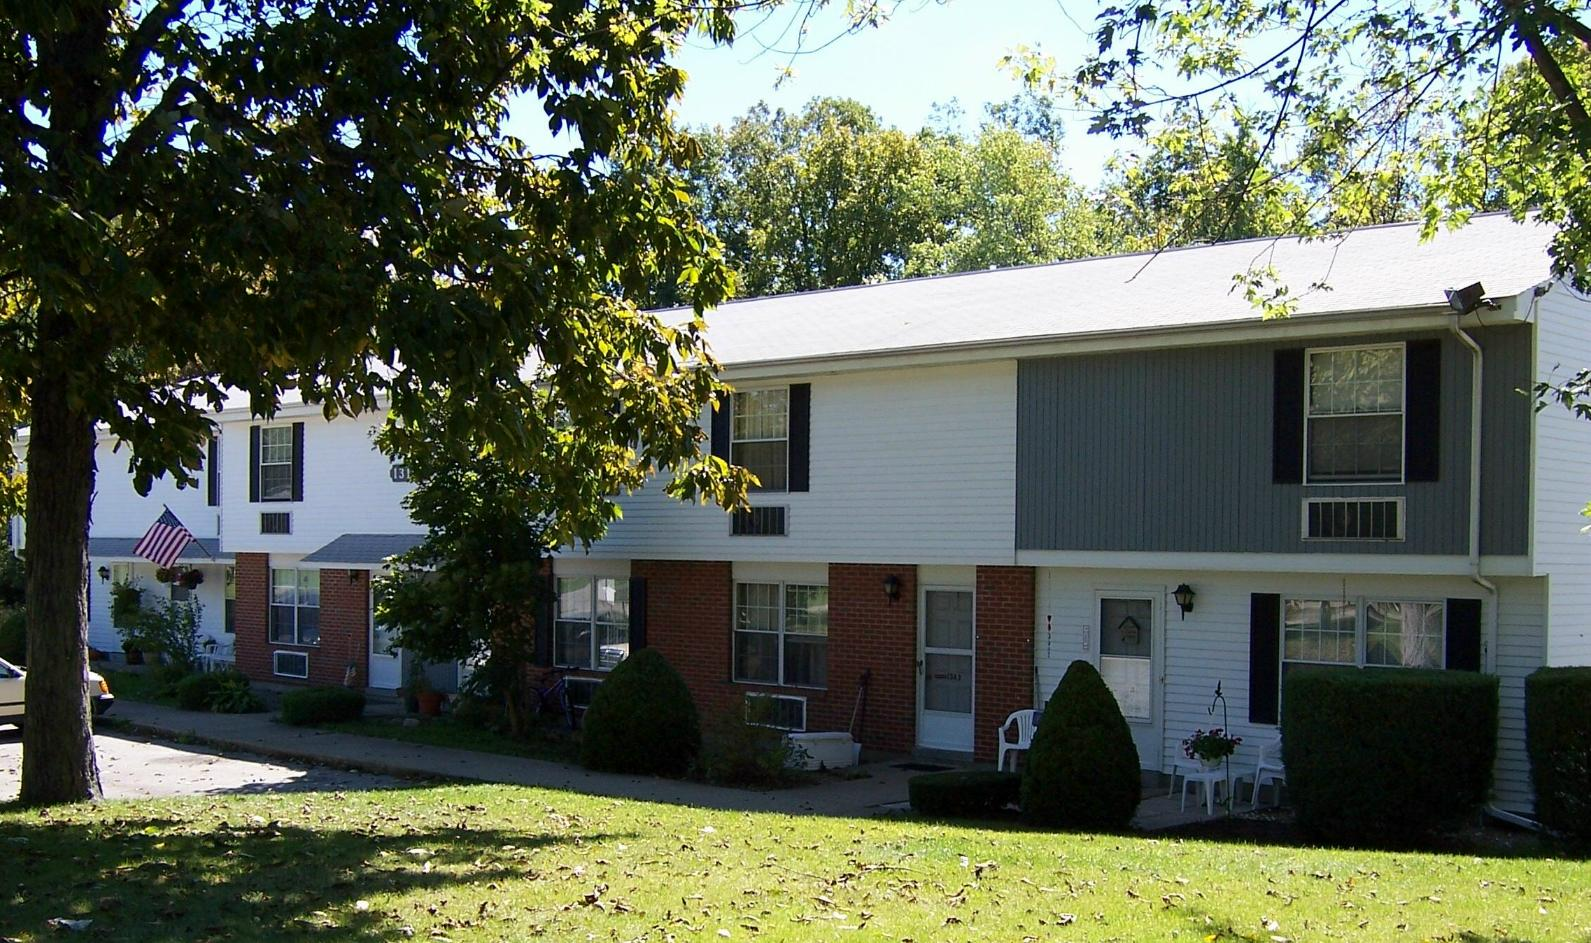 3 bedroom townhouse meadville housing corporation for 3 bedroom townhouse